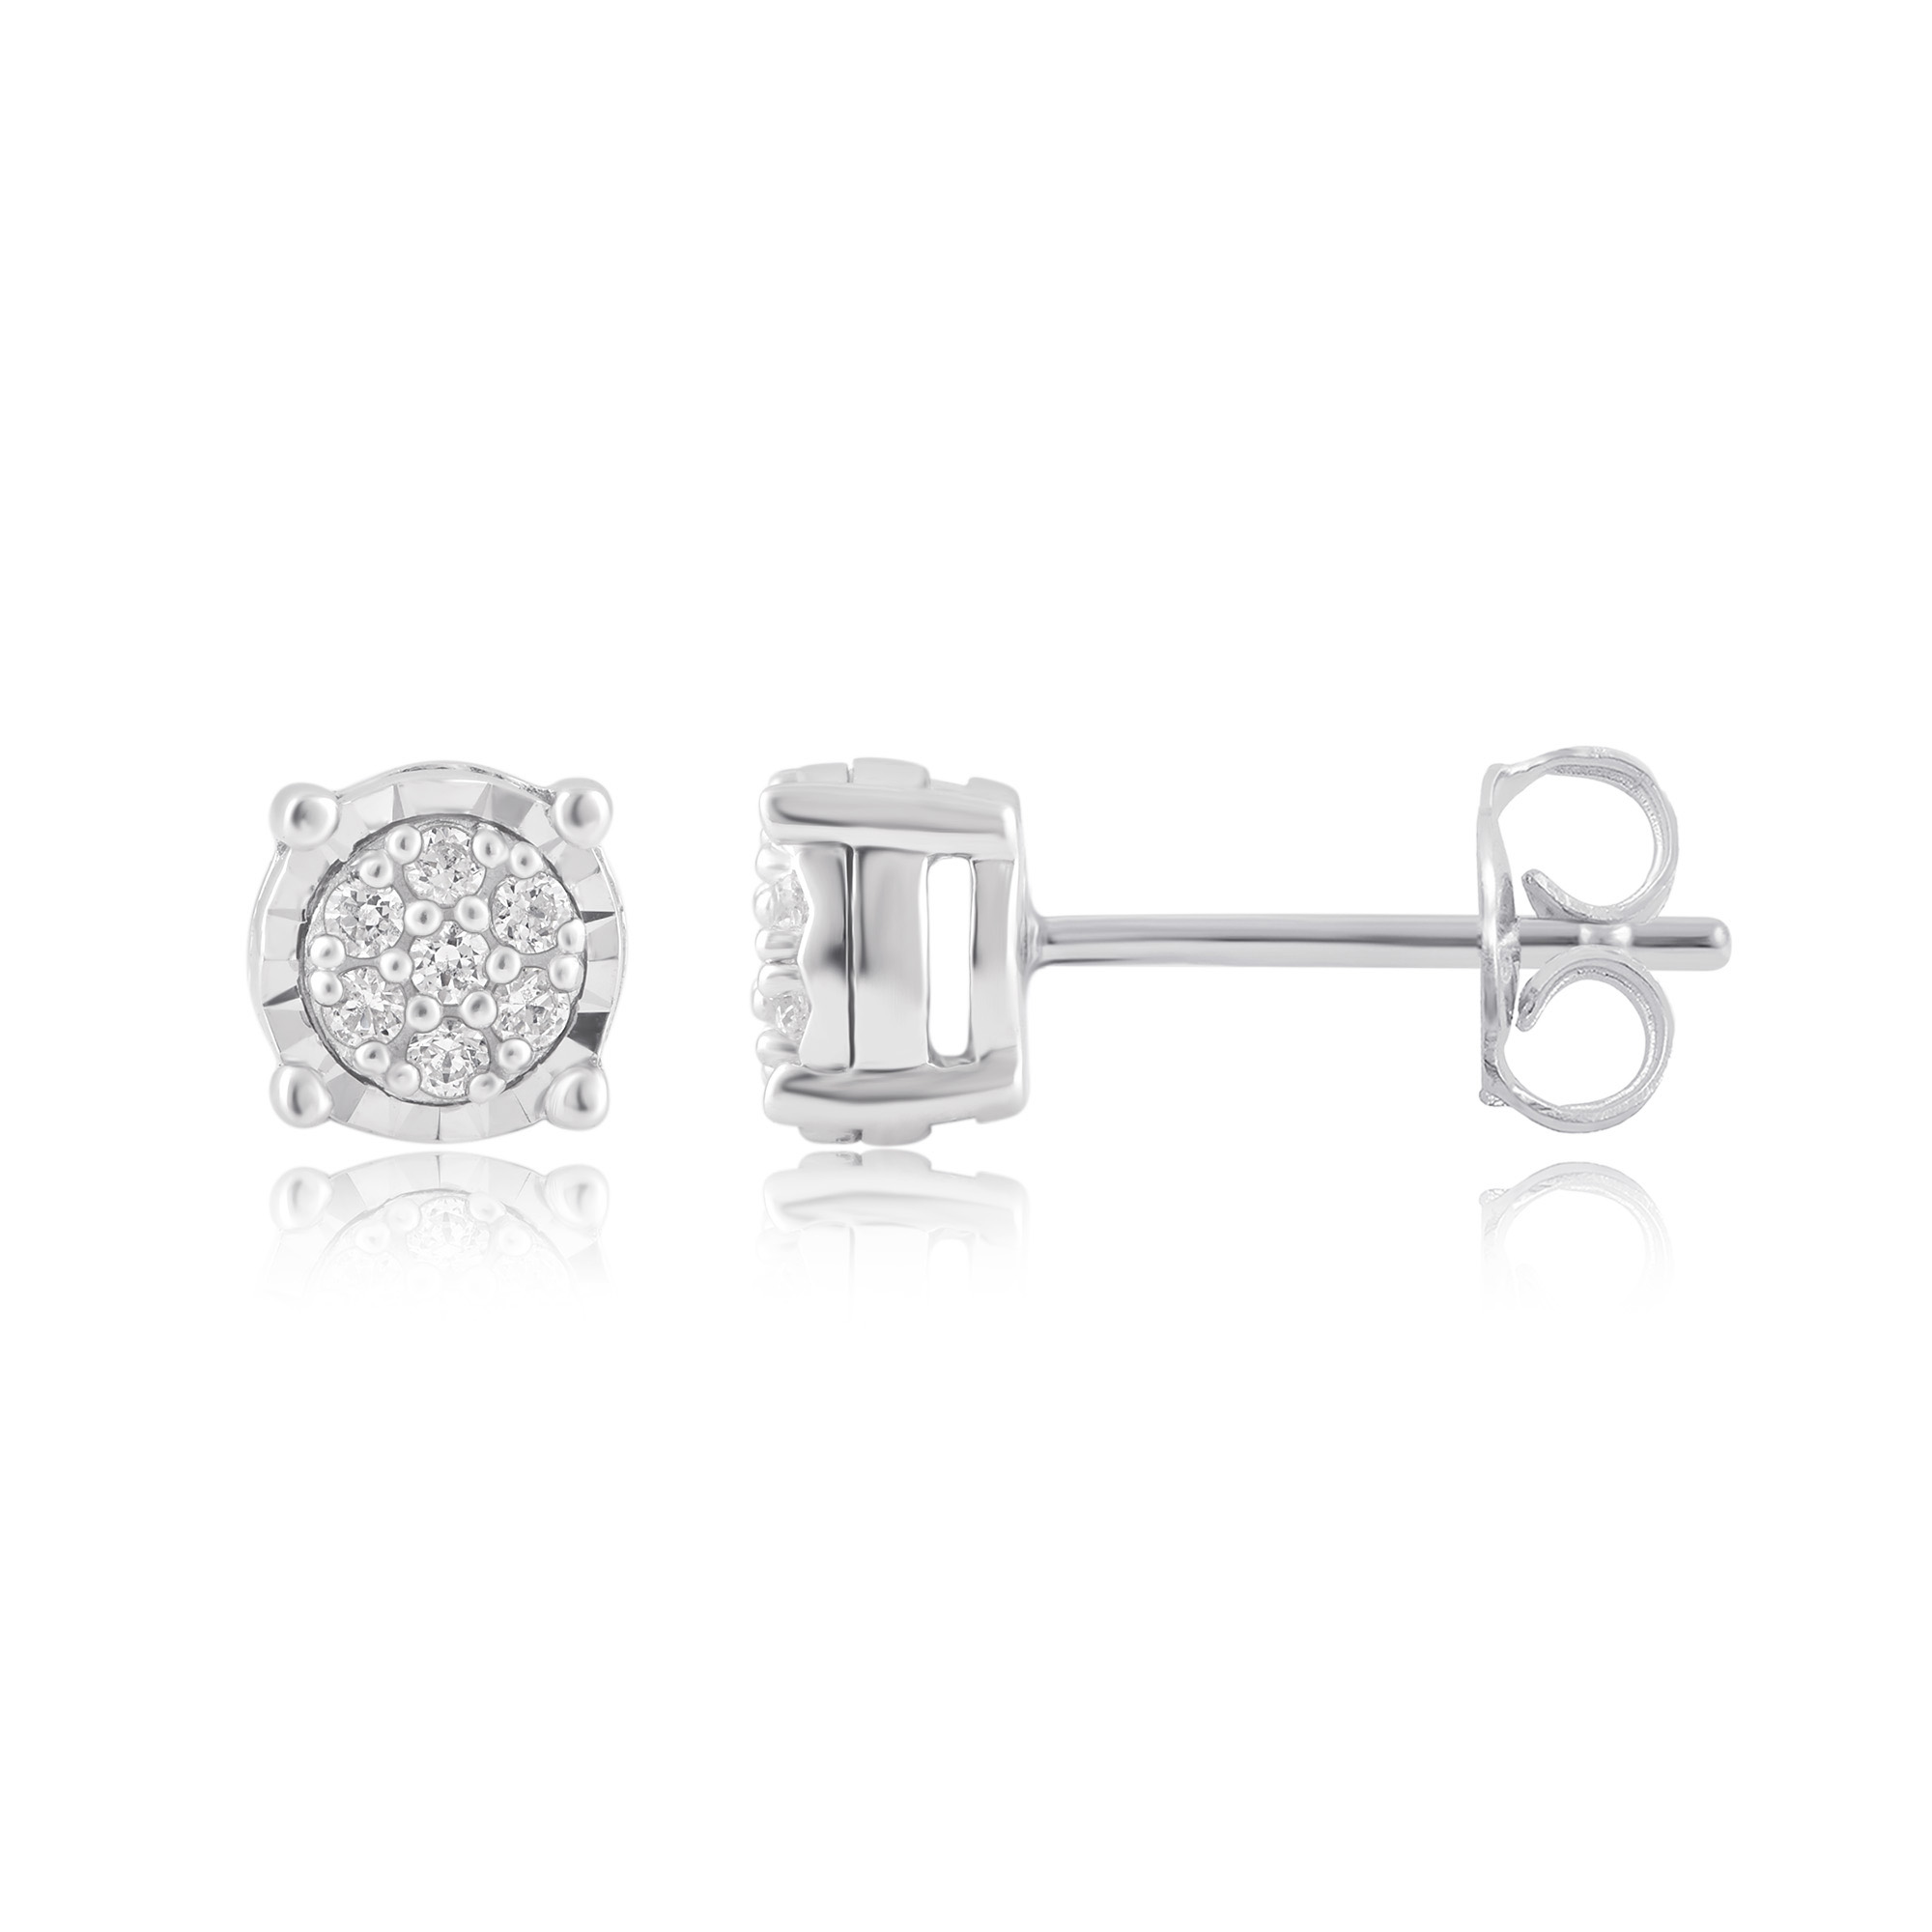 1/10Carat T.W. Diamond Sterling Silver Cluster Stud Earrings.